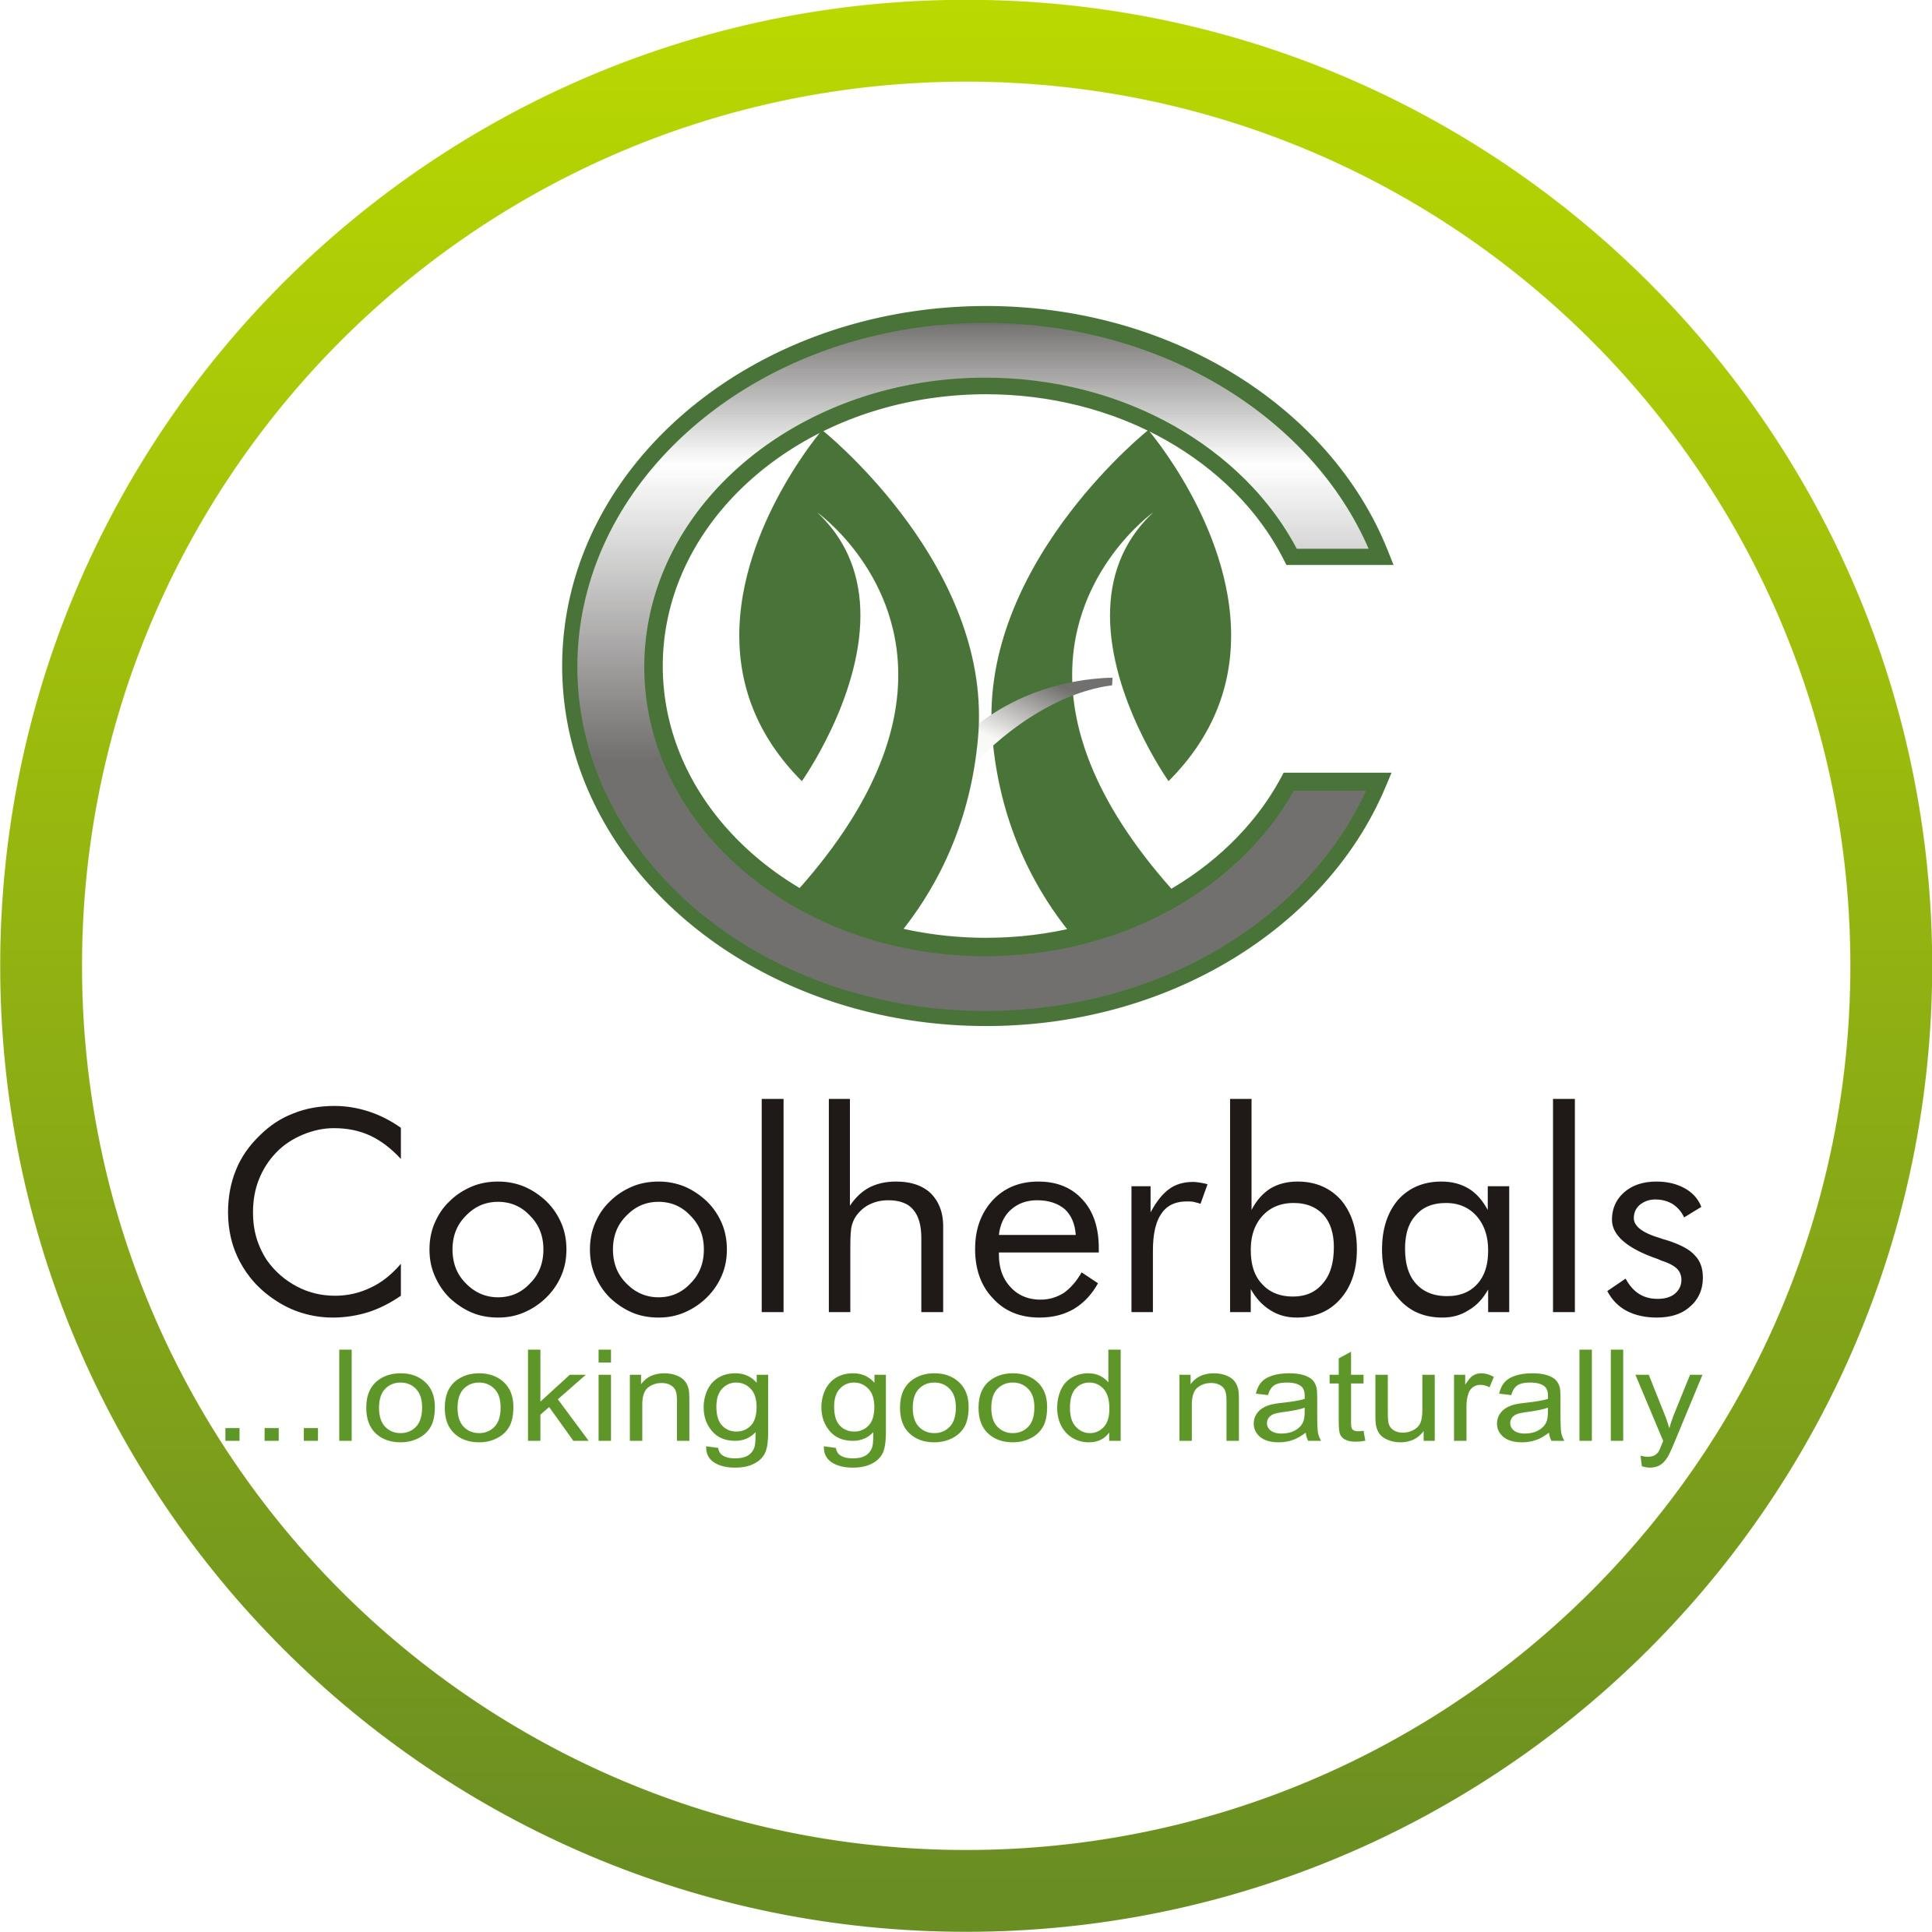 Coolherbals Products